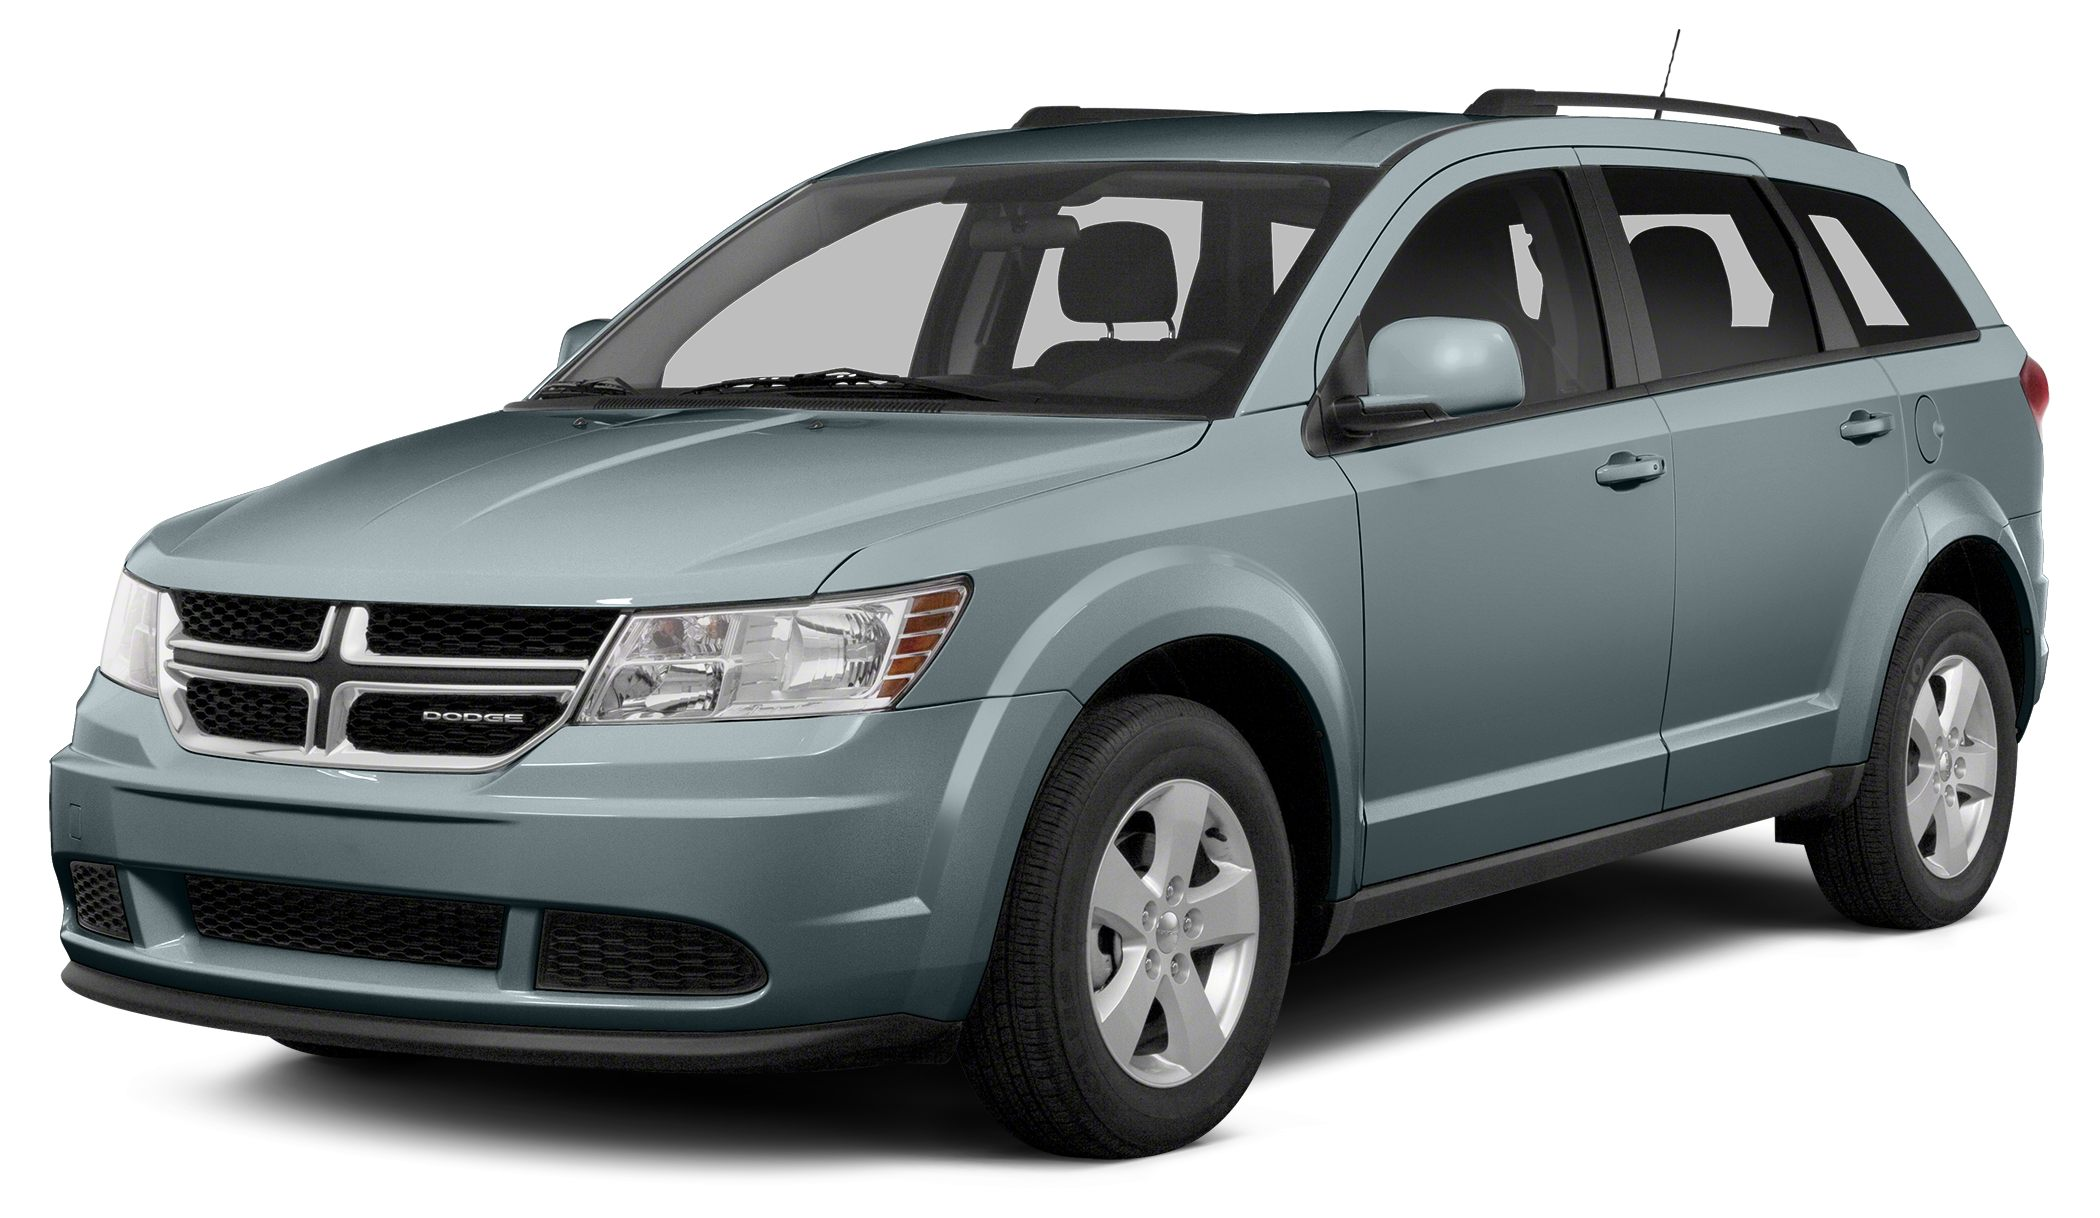 2013 Dodge Journey SXT Dodge Certified CARFAX 1-Owner Excellent Condition EPA 25 MPG Hwy17 MPG